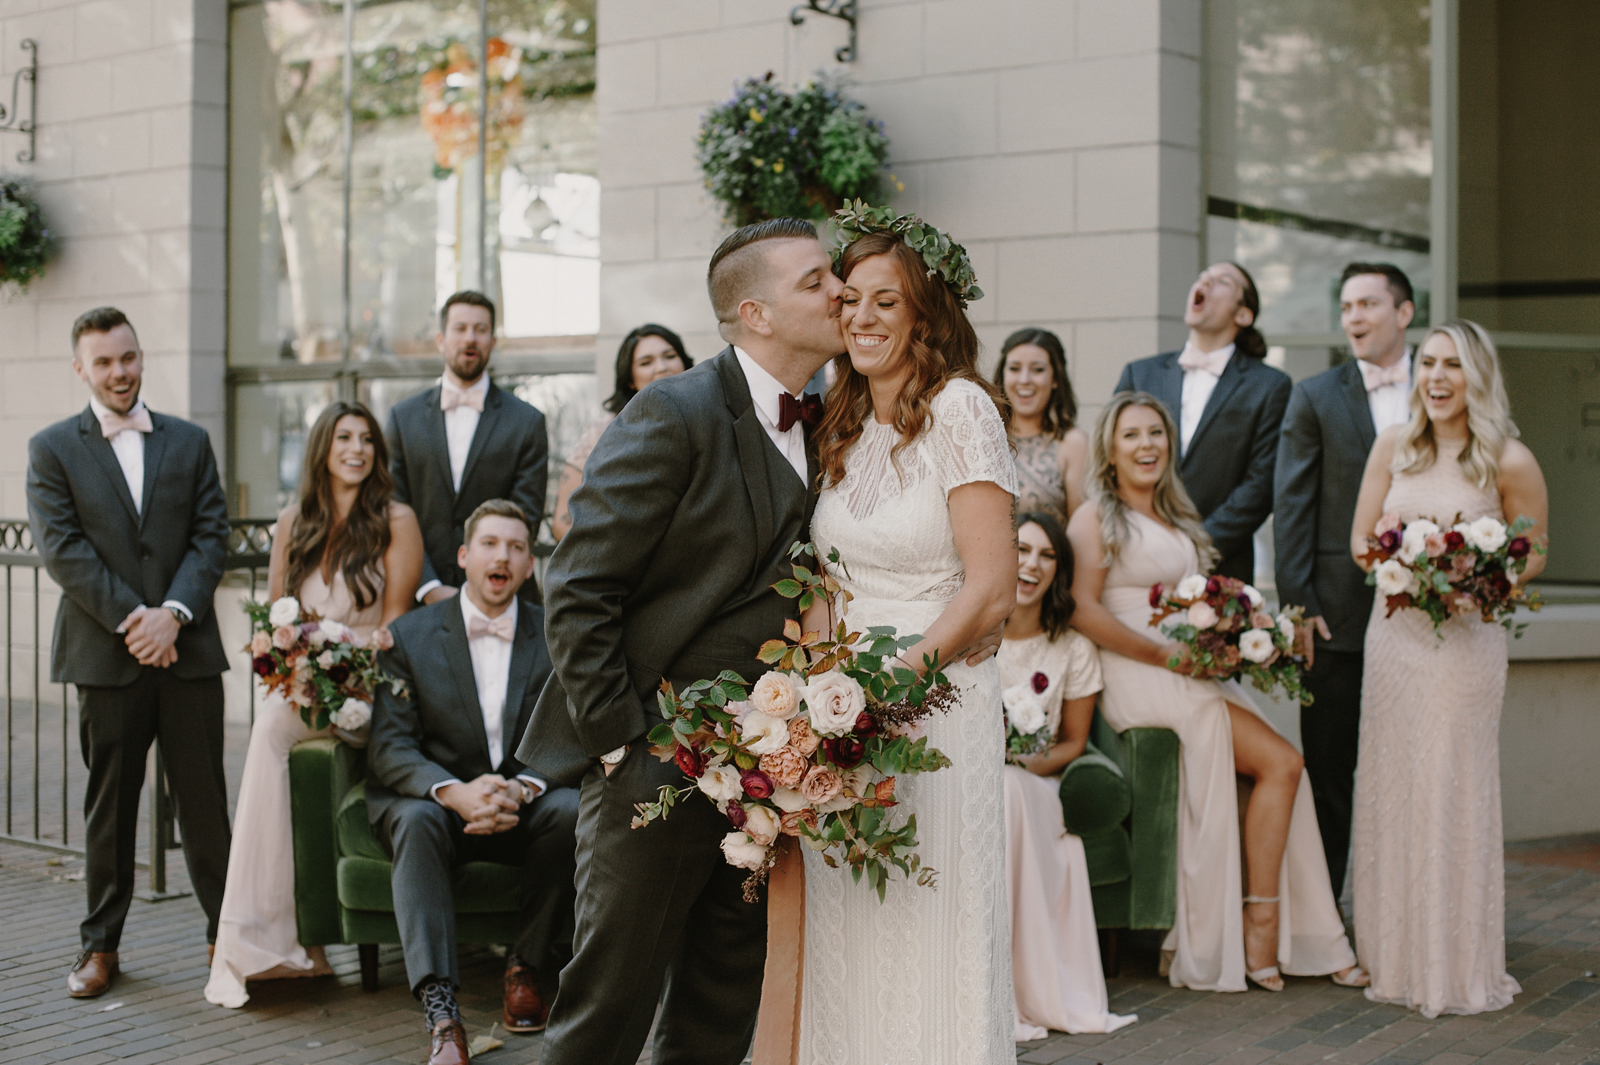 Downtown_Seattle_Wedding_Foundry_Sinclair_Moore041.JPG